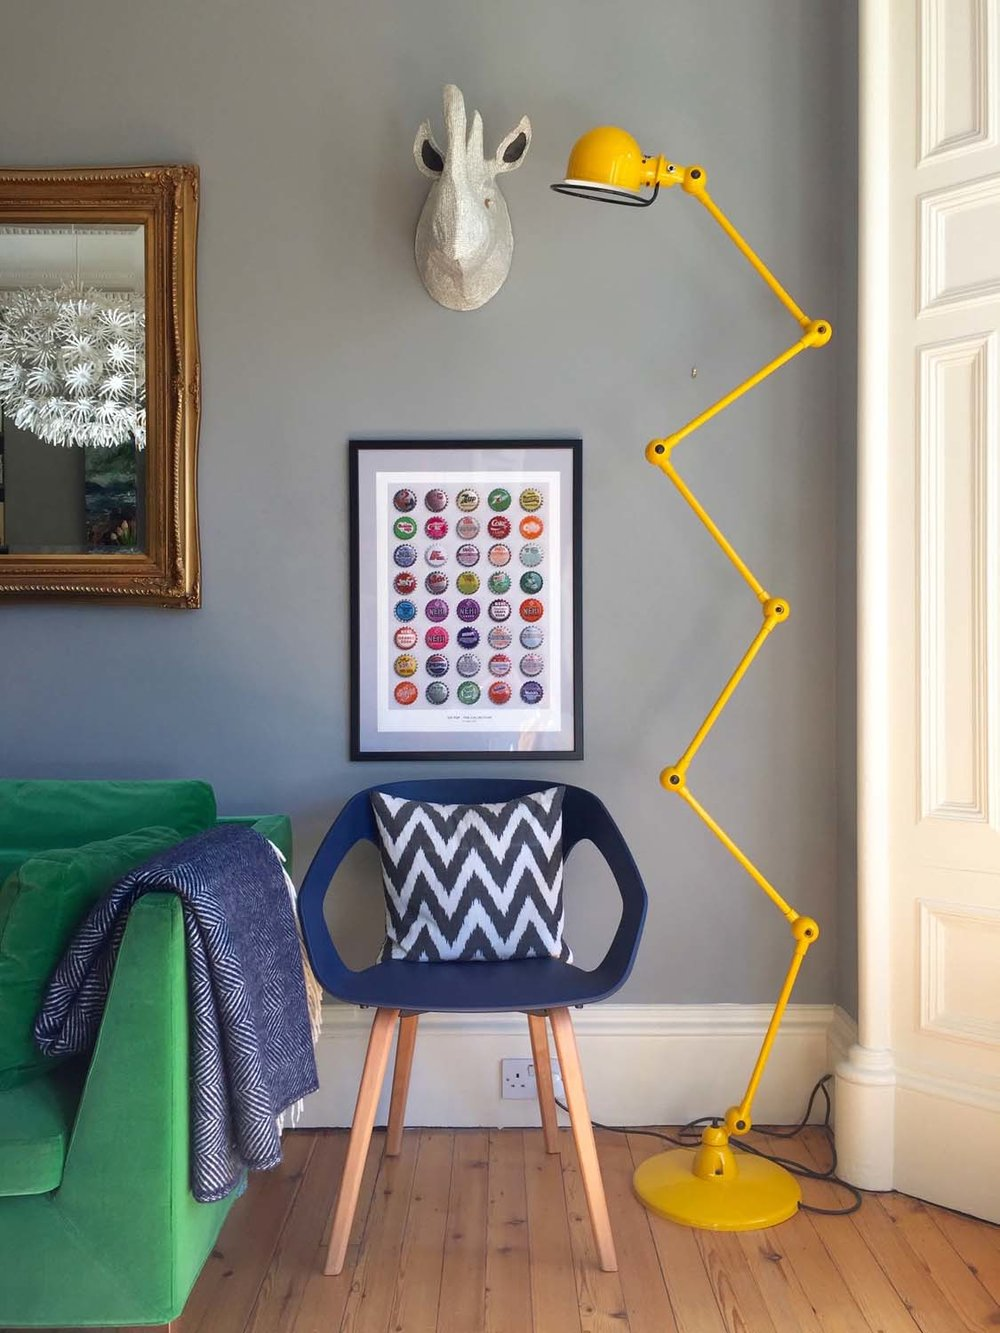 Go Pop The Collection print, Tom Love; Yellow lamp, Jielde; Rhino head, Anthropologie; Sofa, IKEA; Rug, Cox & Cox